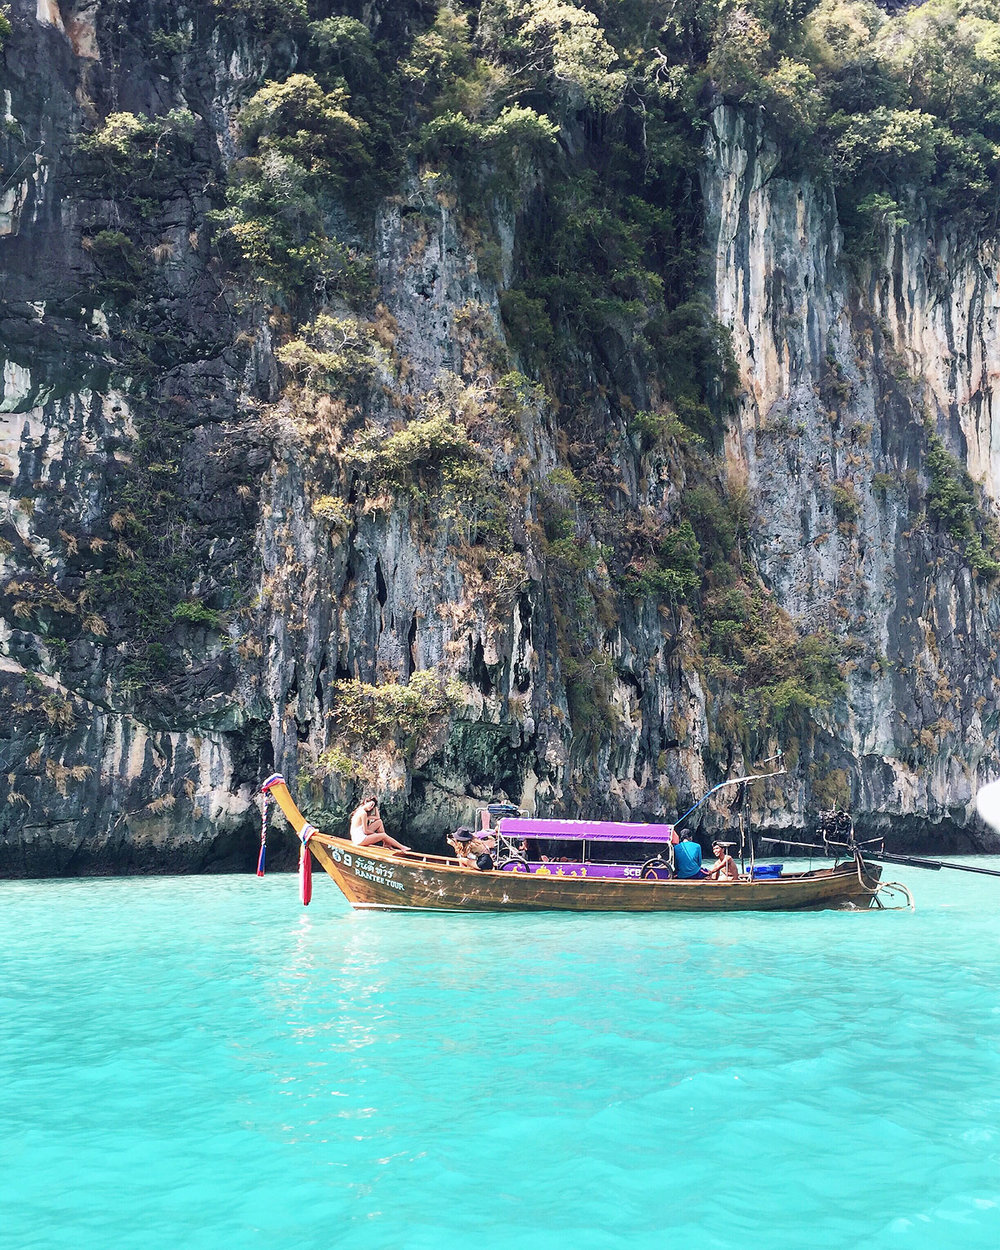 The beautiful aquamarine waters of Ko Phi Phi (Phi Phi Islands)